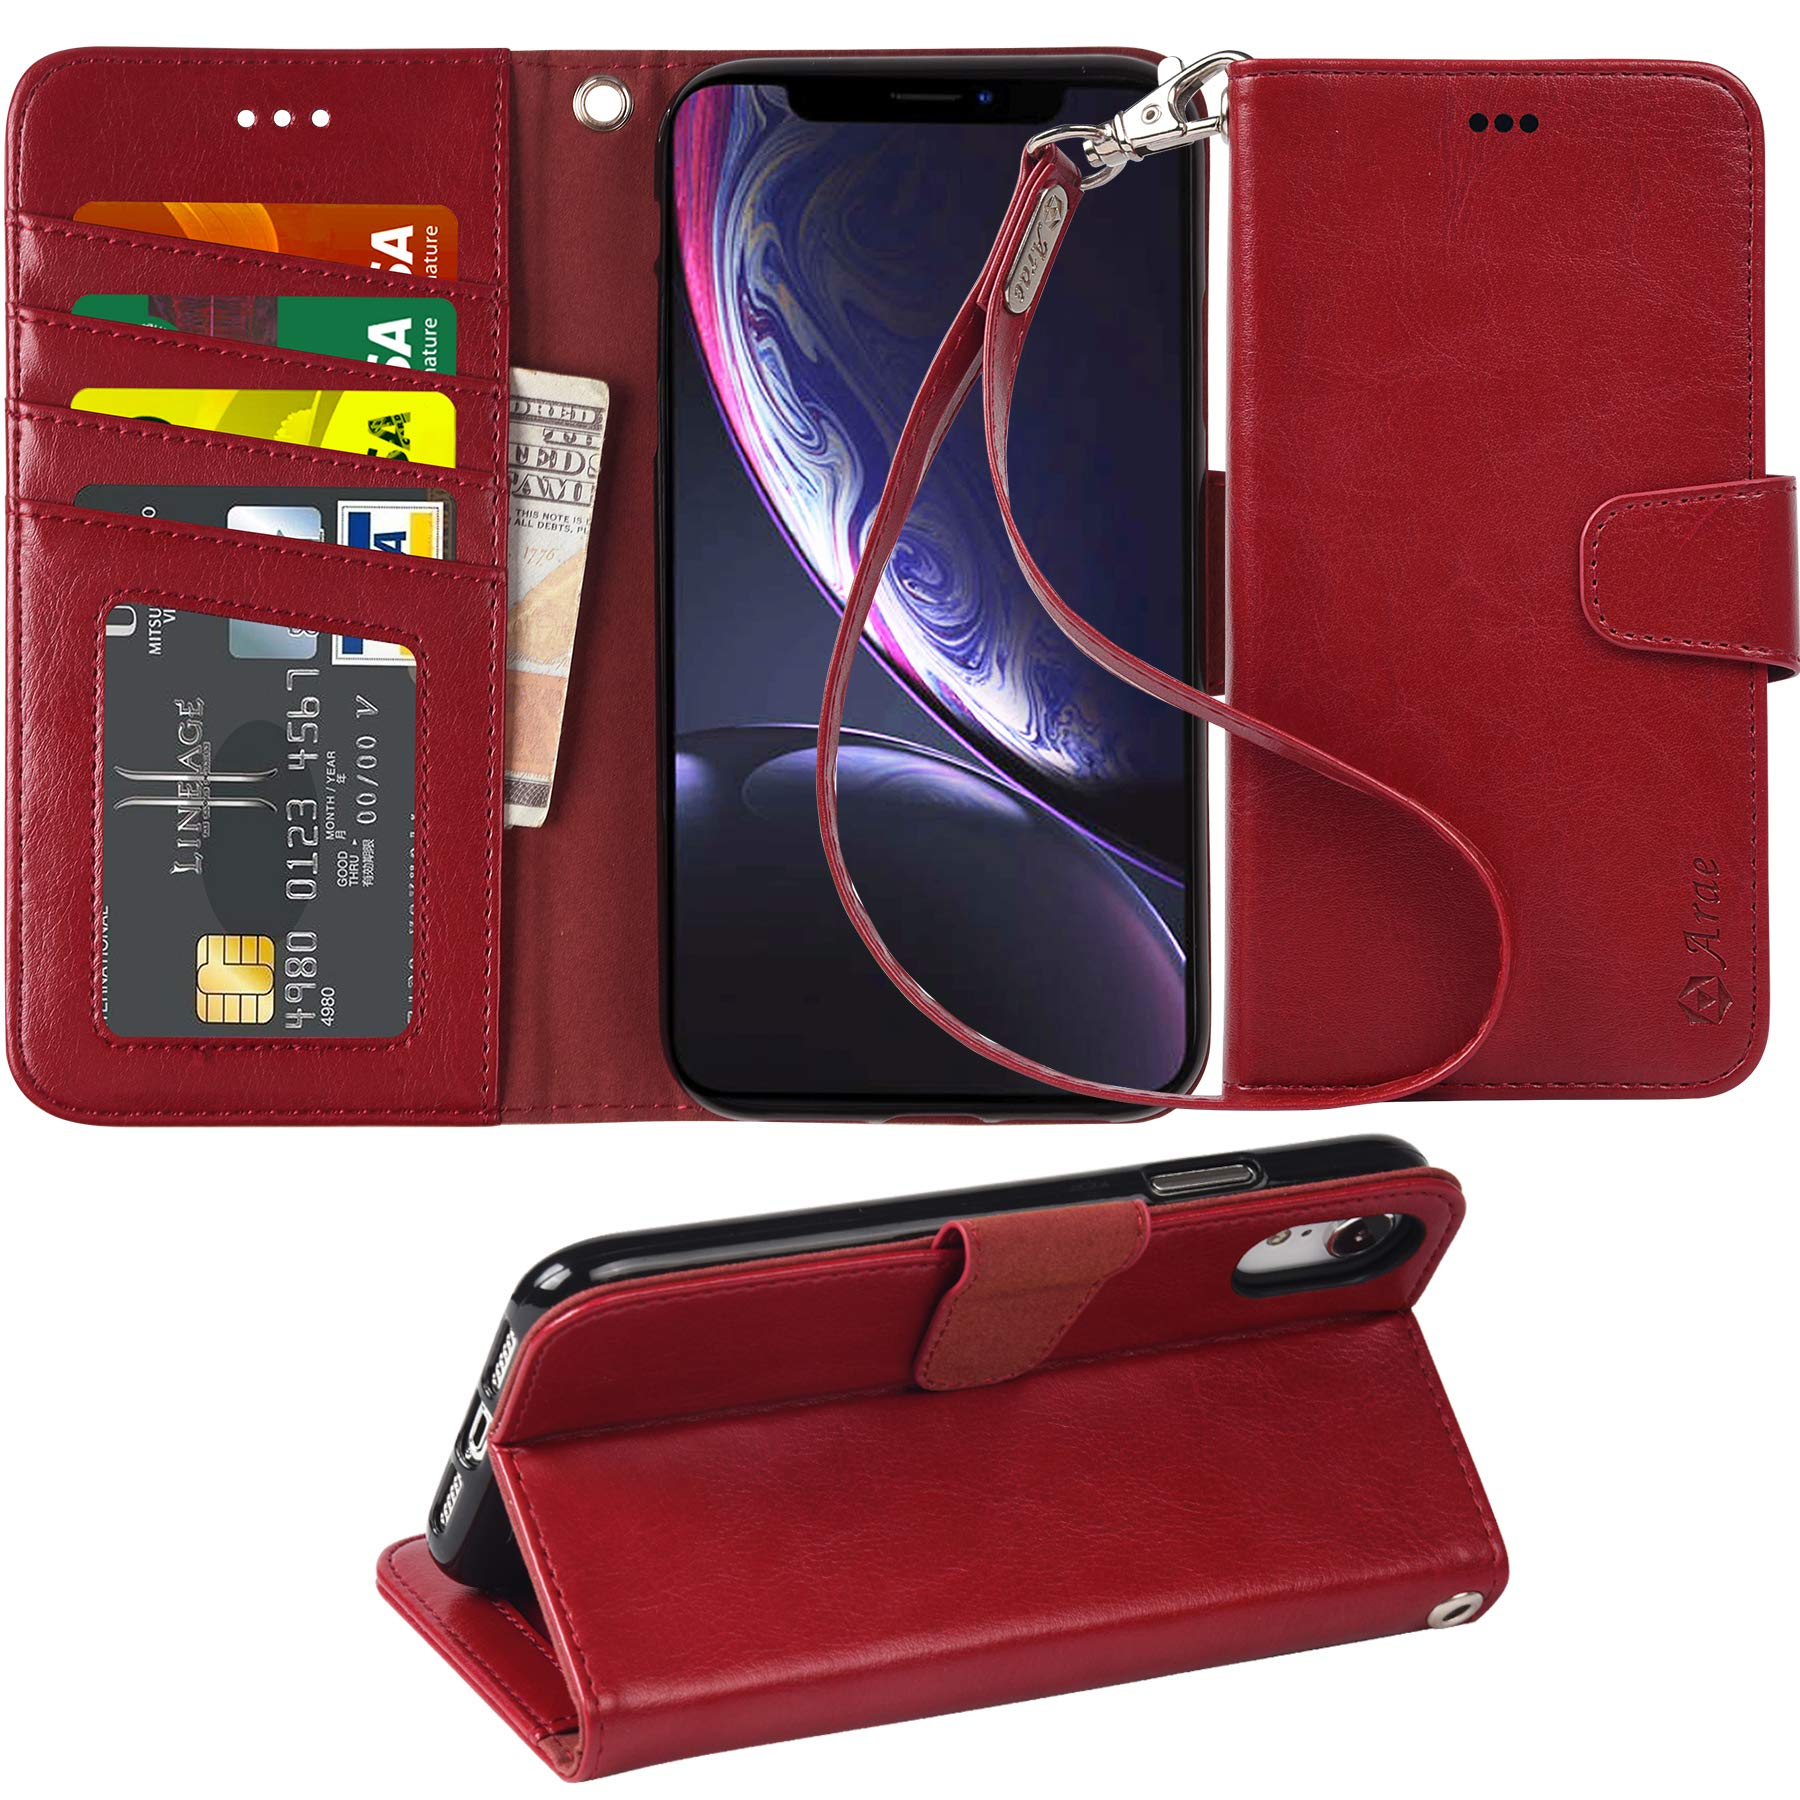 Arae Wallet Case for iPhone xr 2018 PU Leather flip case Cover [Stand Feature] with Wrist Strap and [4-Slots] ID&Credit Cards Pocket for iPhone Xr 6.1 inch (Wine red) by Arae